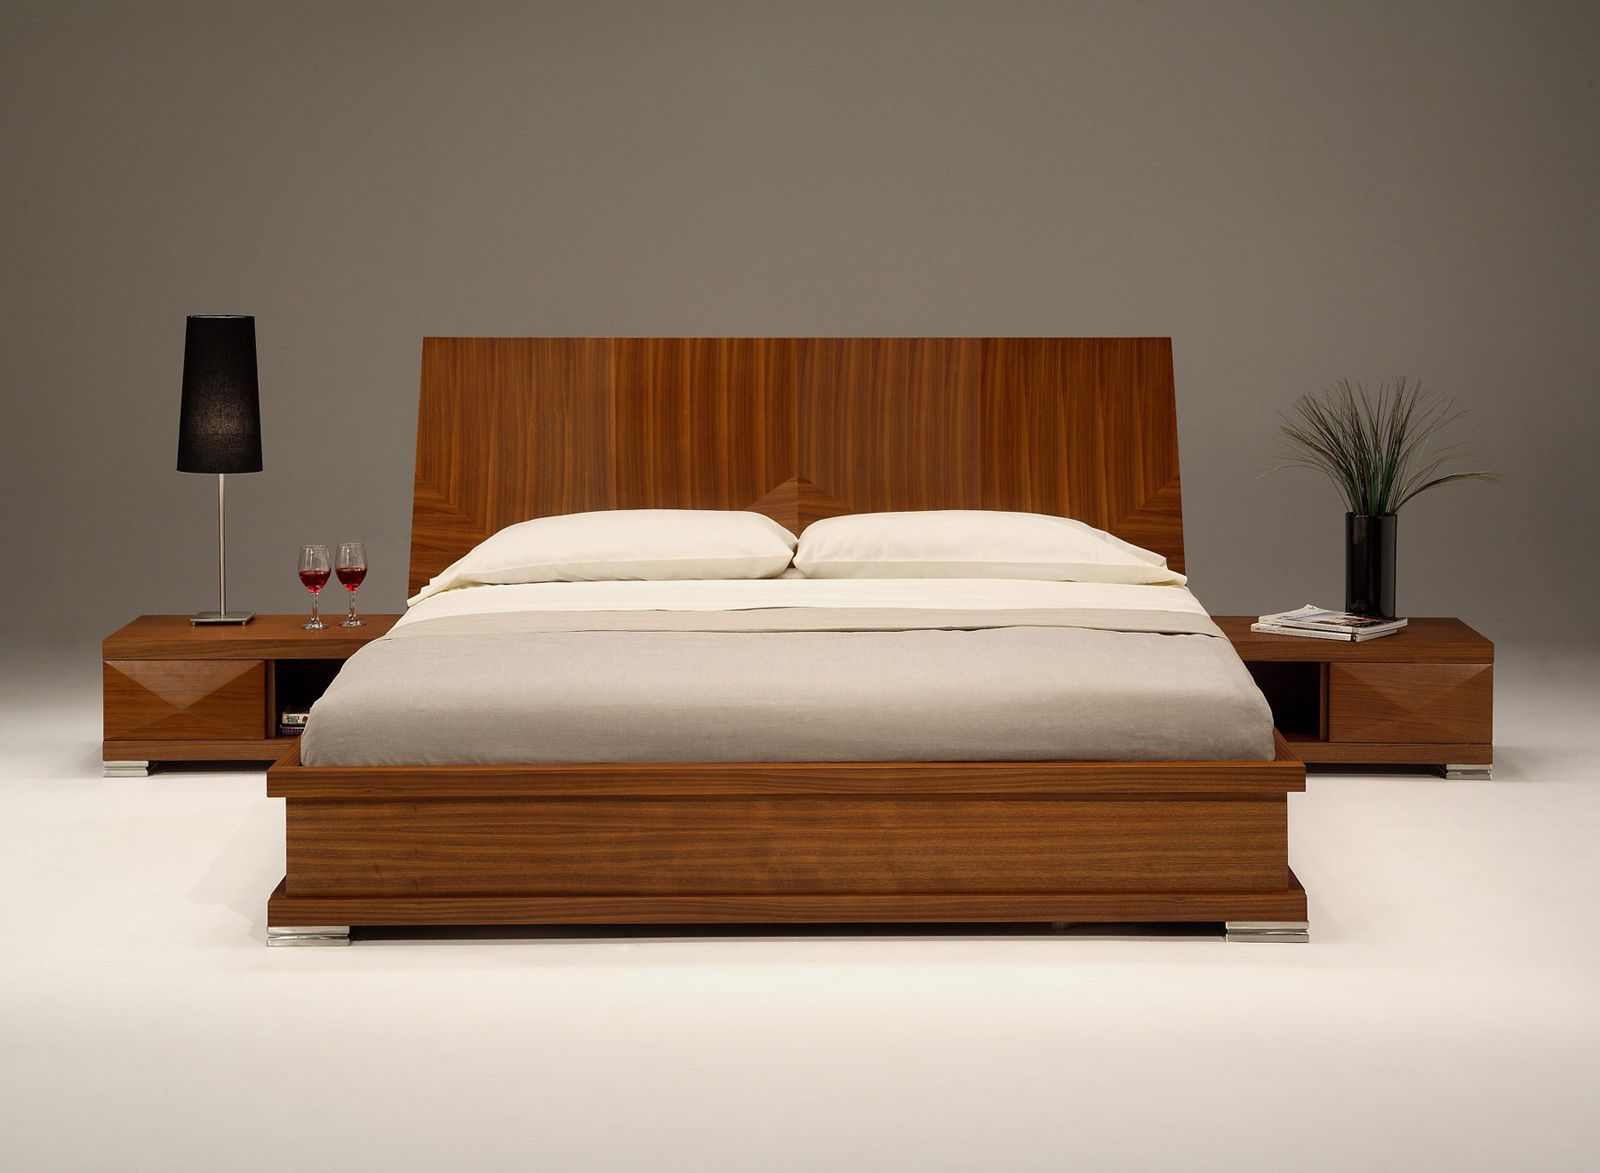 Bedroom design tips with modern bedroom furniture for Bedroom bad design